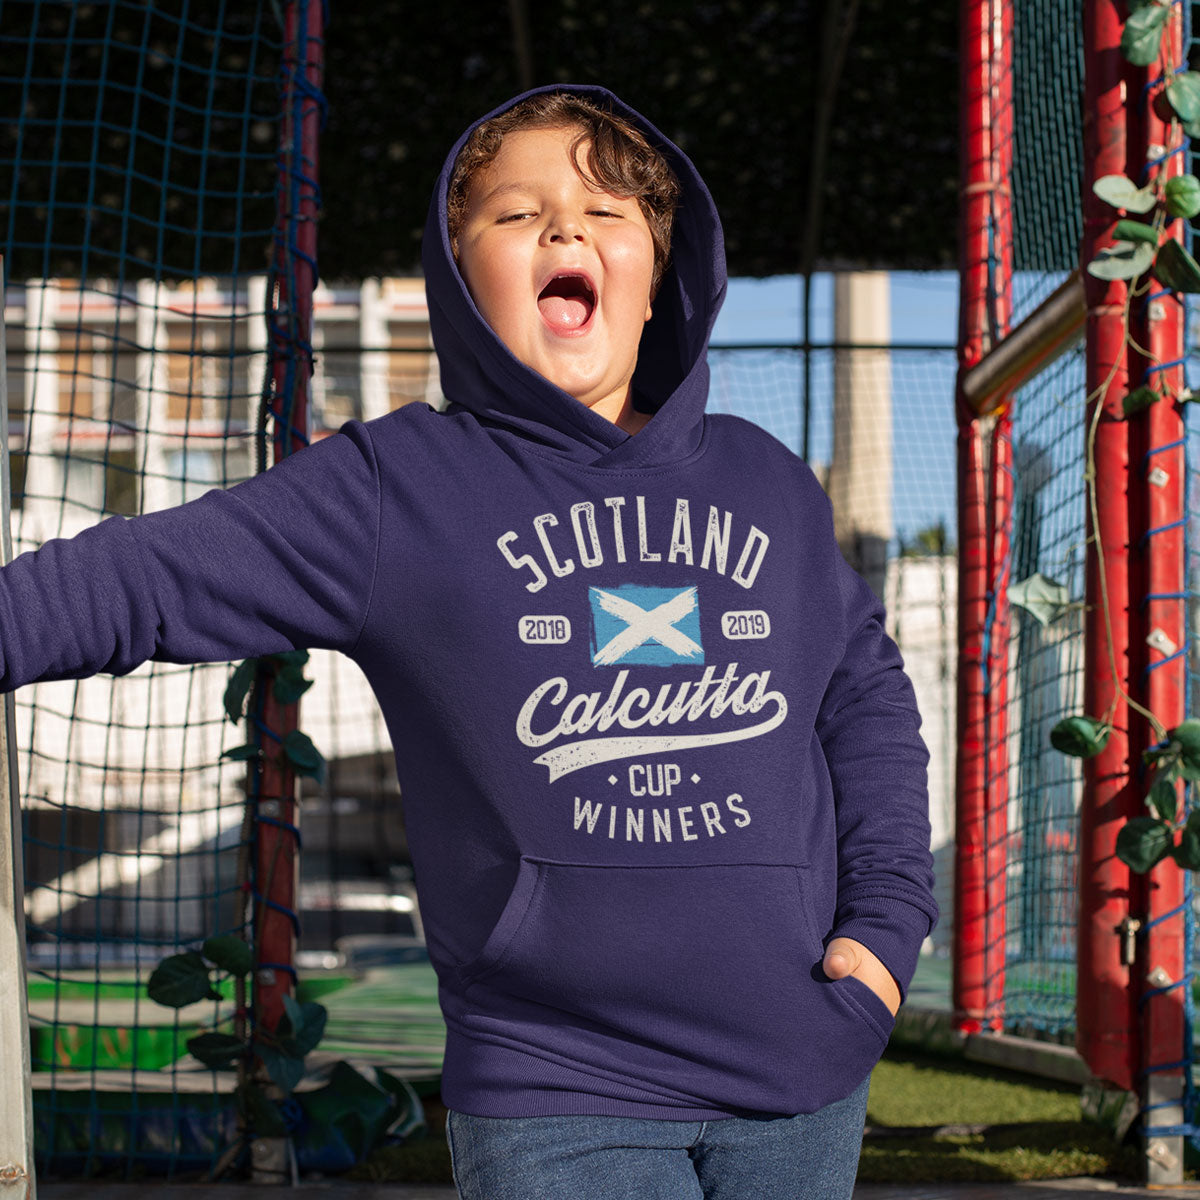 Kid's Scotland 2018 & 2019 Calcutta Cup Winners Hoody - First XV rugbystuff.com